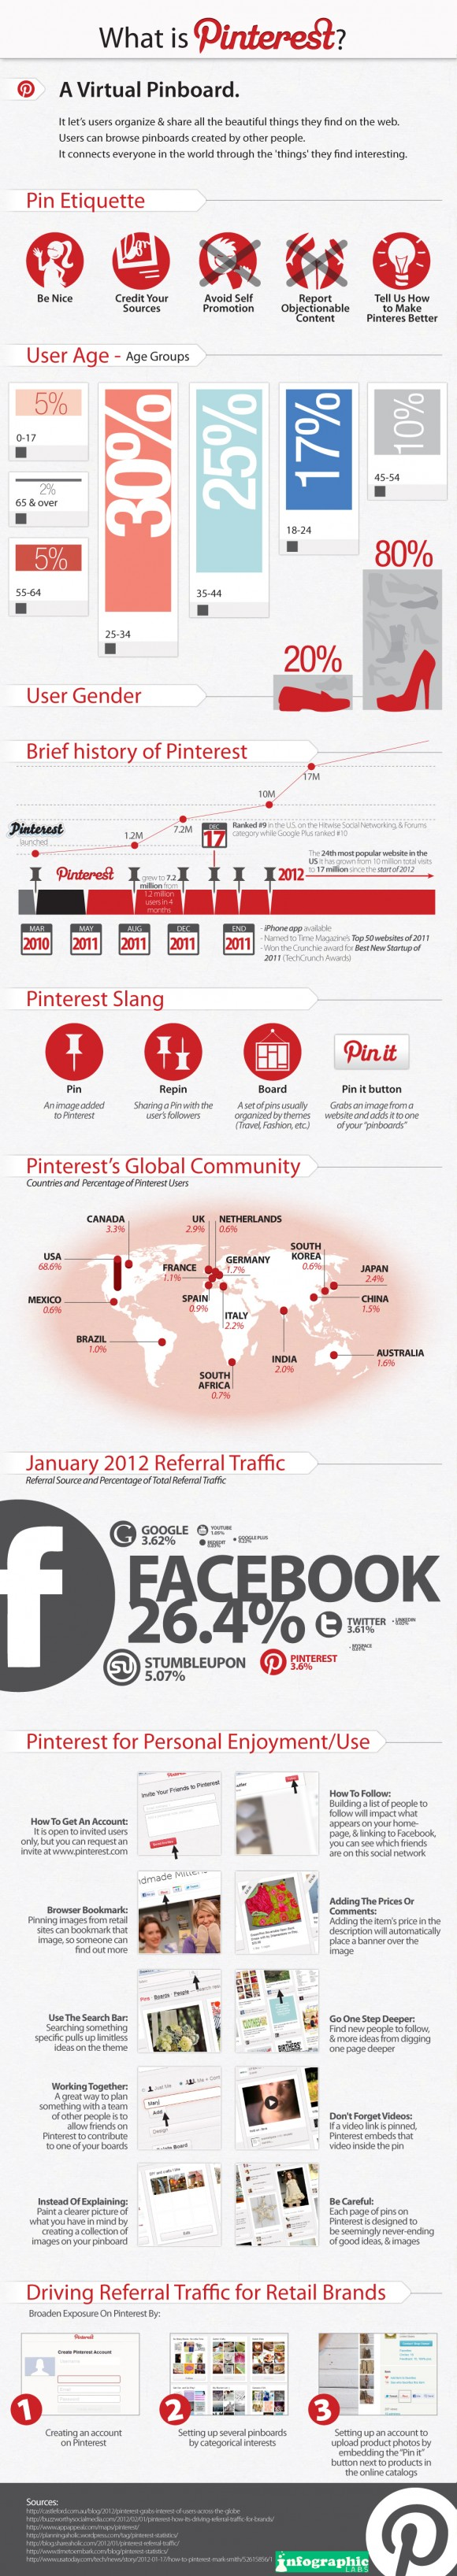 Pinterest – The Social Media Darling Of 2012: Infographic